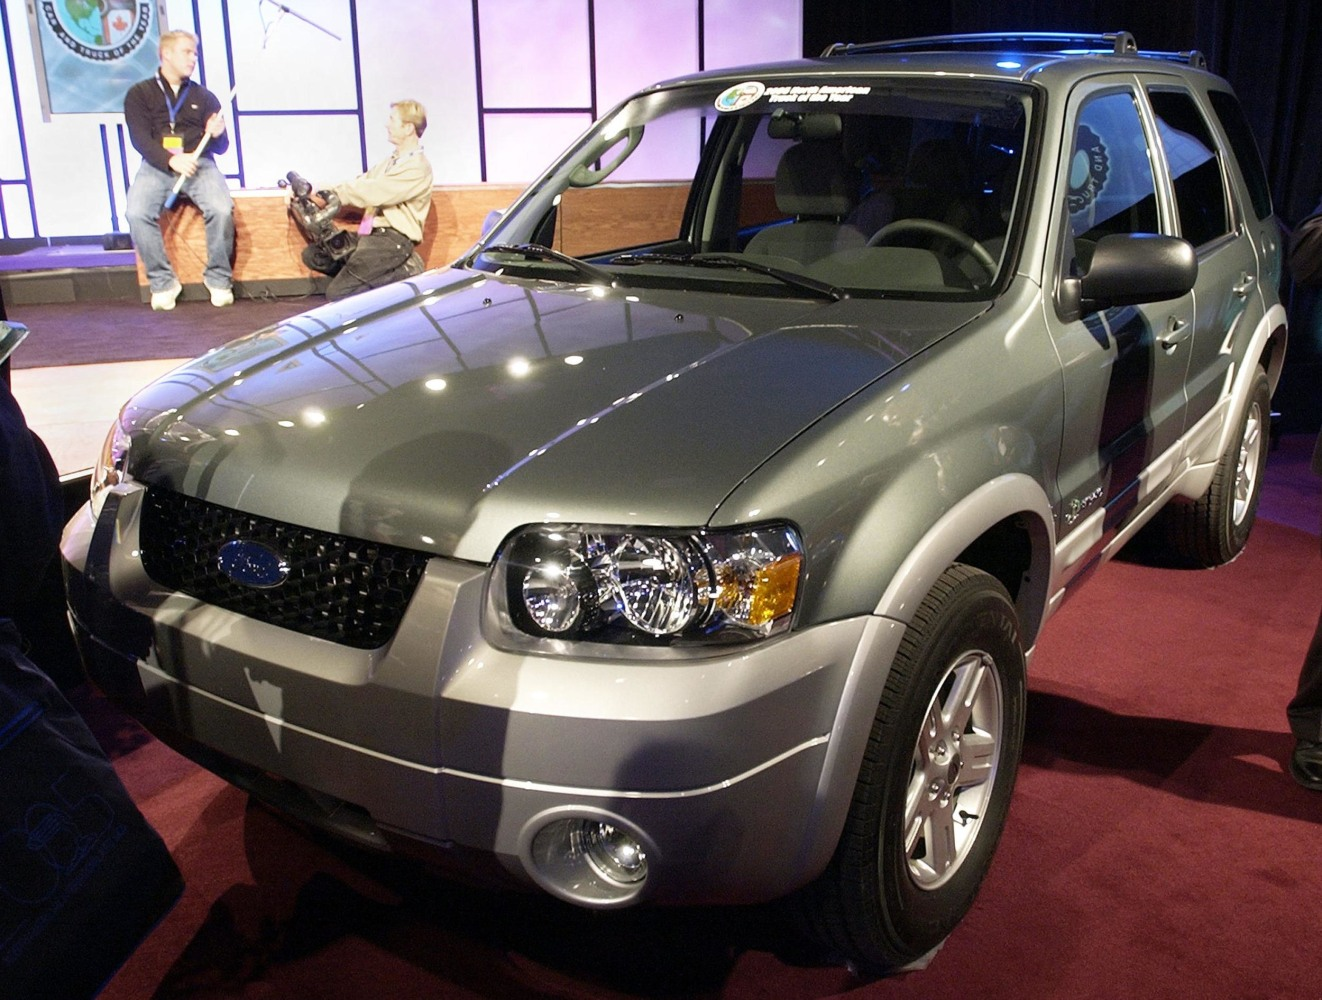 ford recalling over 400 000 cars for rusty frames faulty seats nbc news. Black Bedroom Furniture Sets. Home Design Ideas